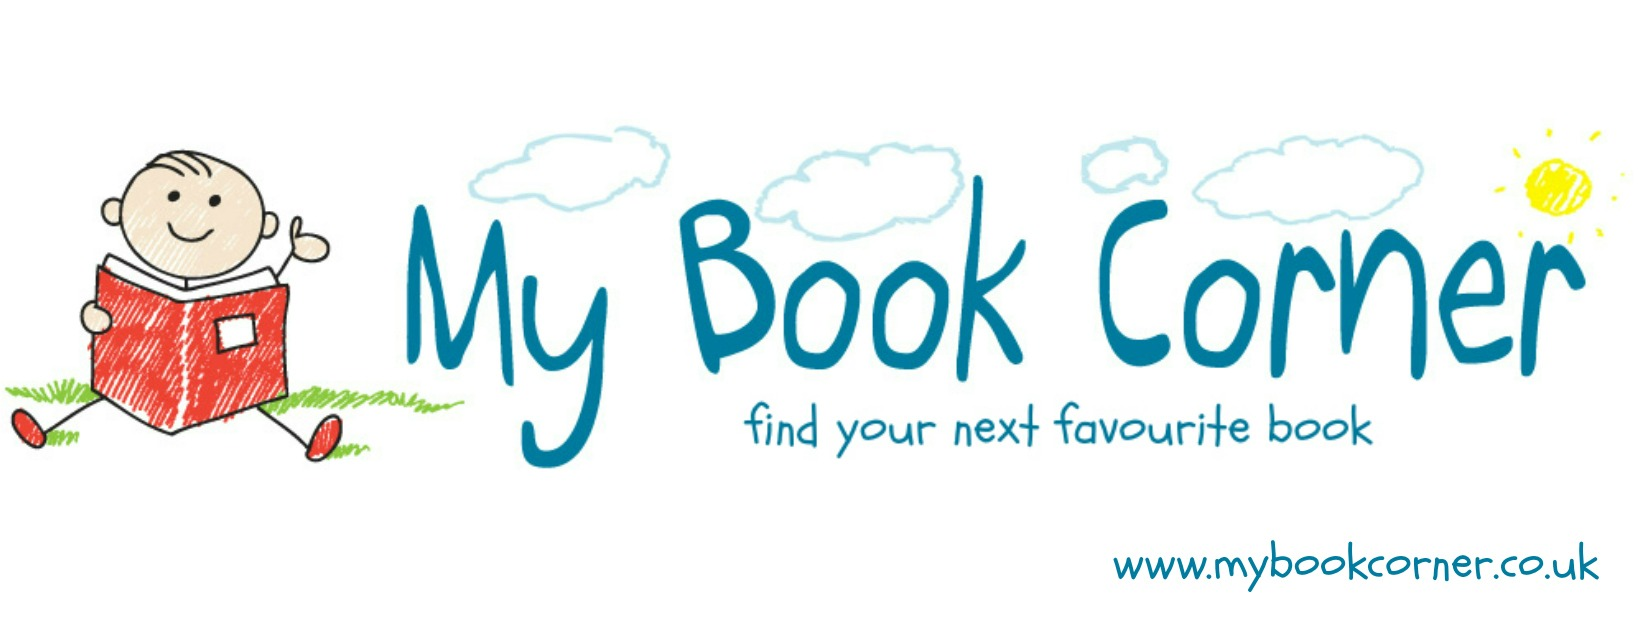 My Book Corner review